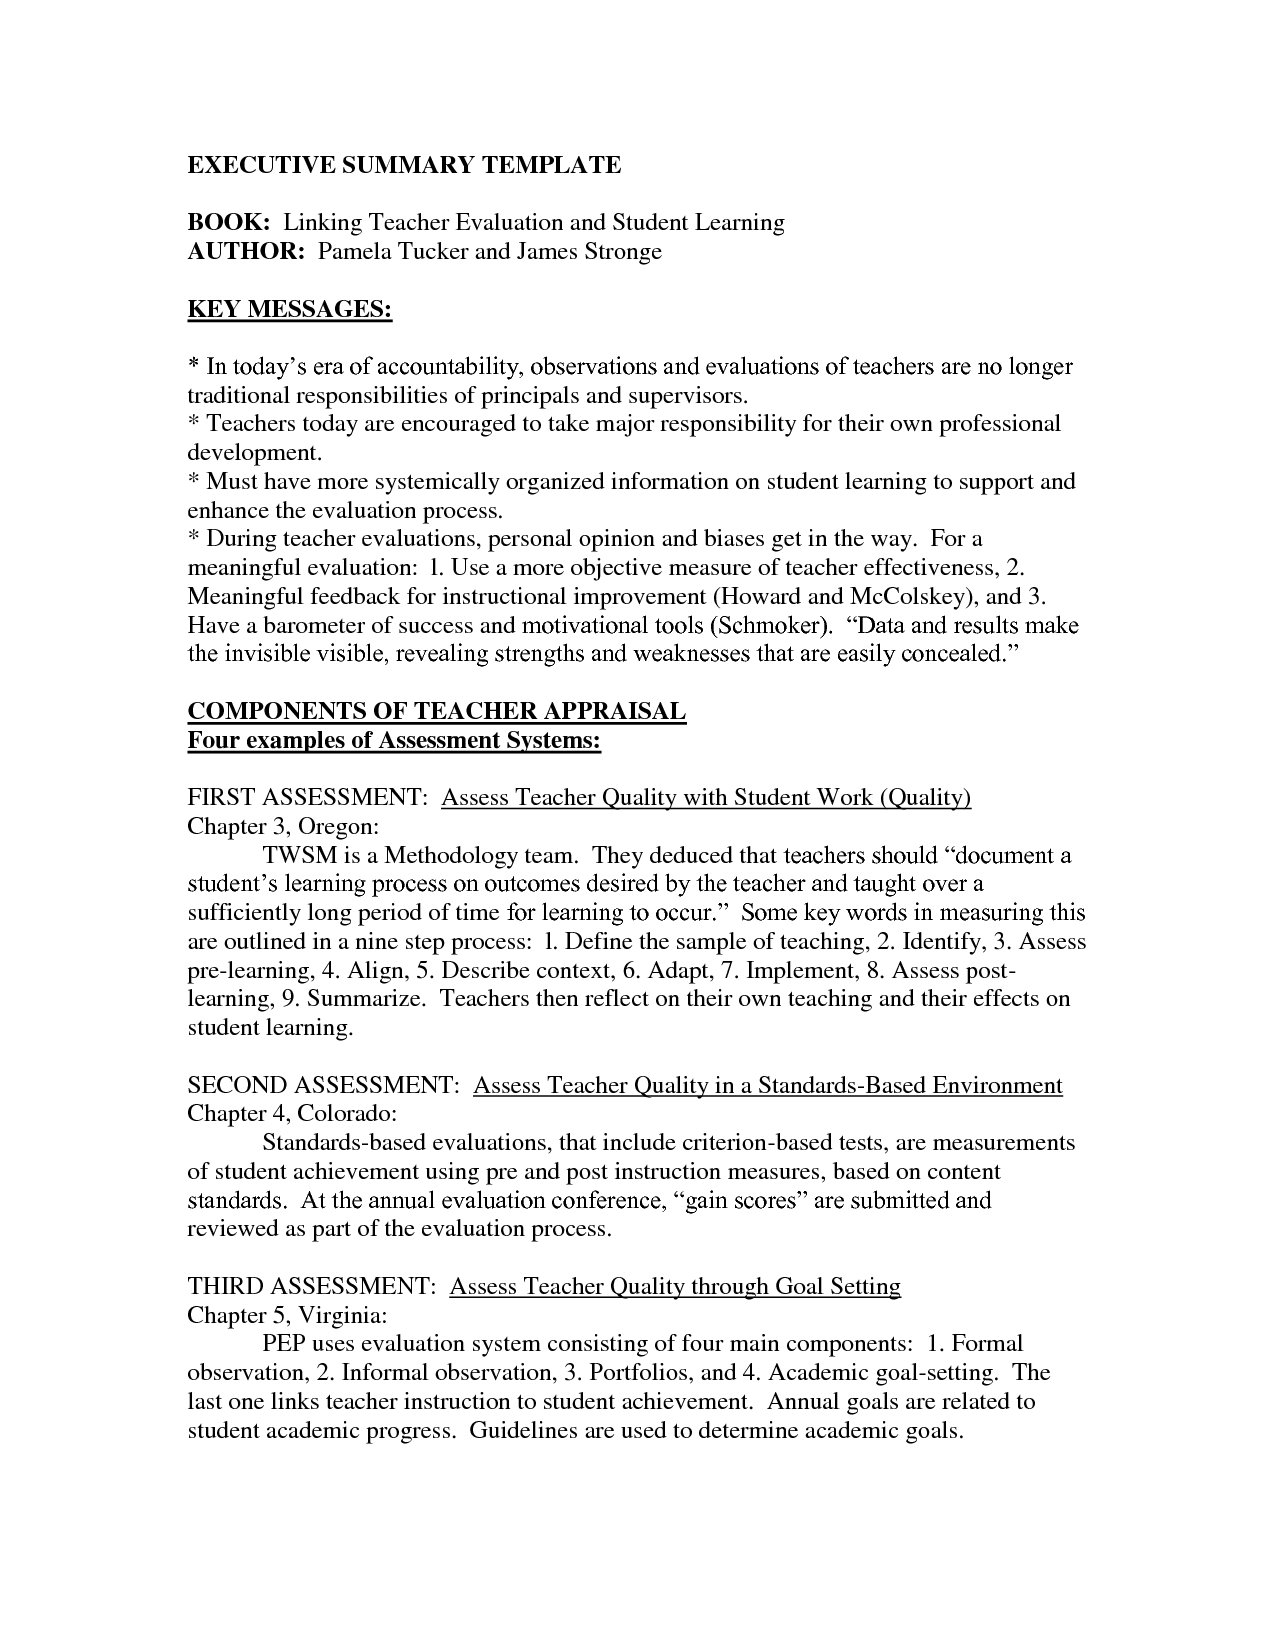 Word Executive Summary Template Resume Example Samples Pdf  Home